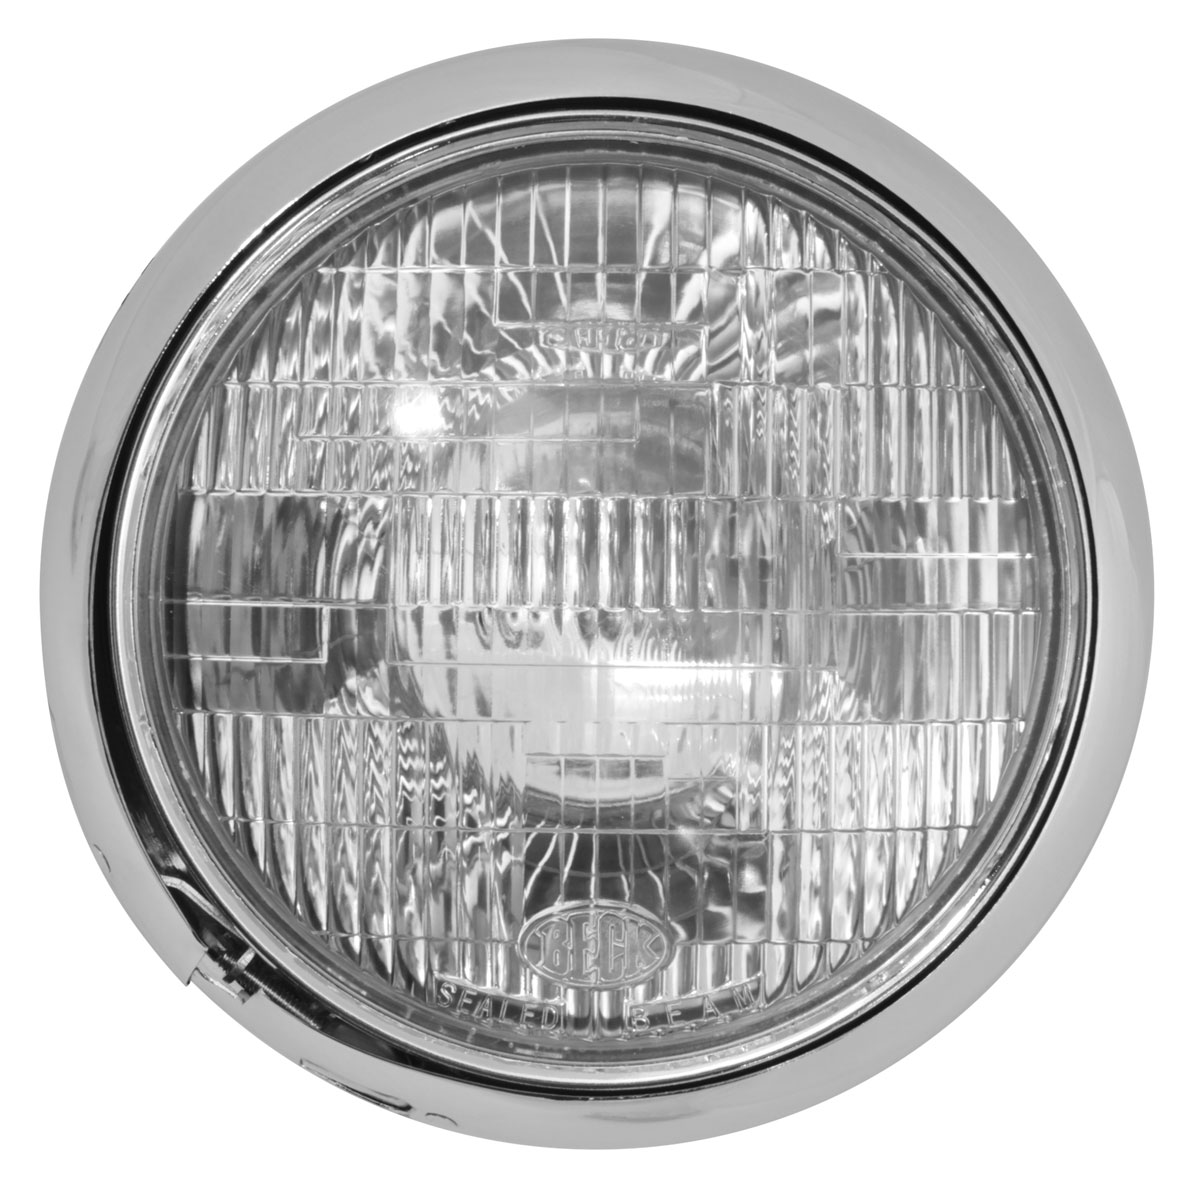 Replica 7″ Round 6-Volt Headlamp